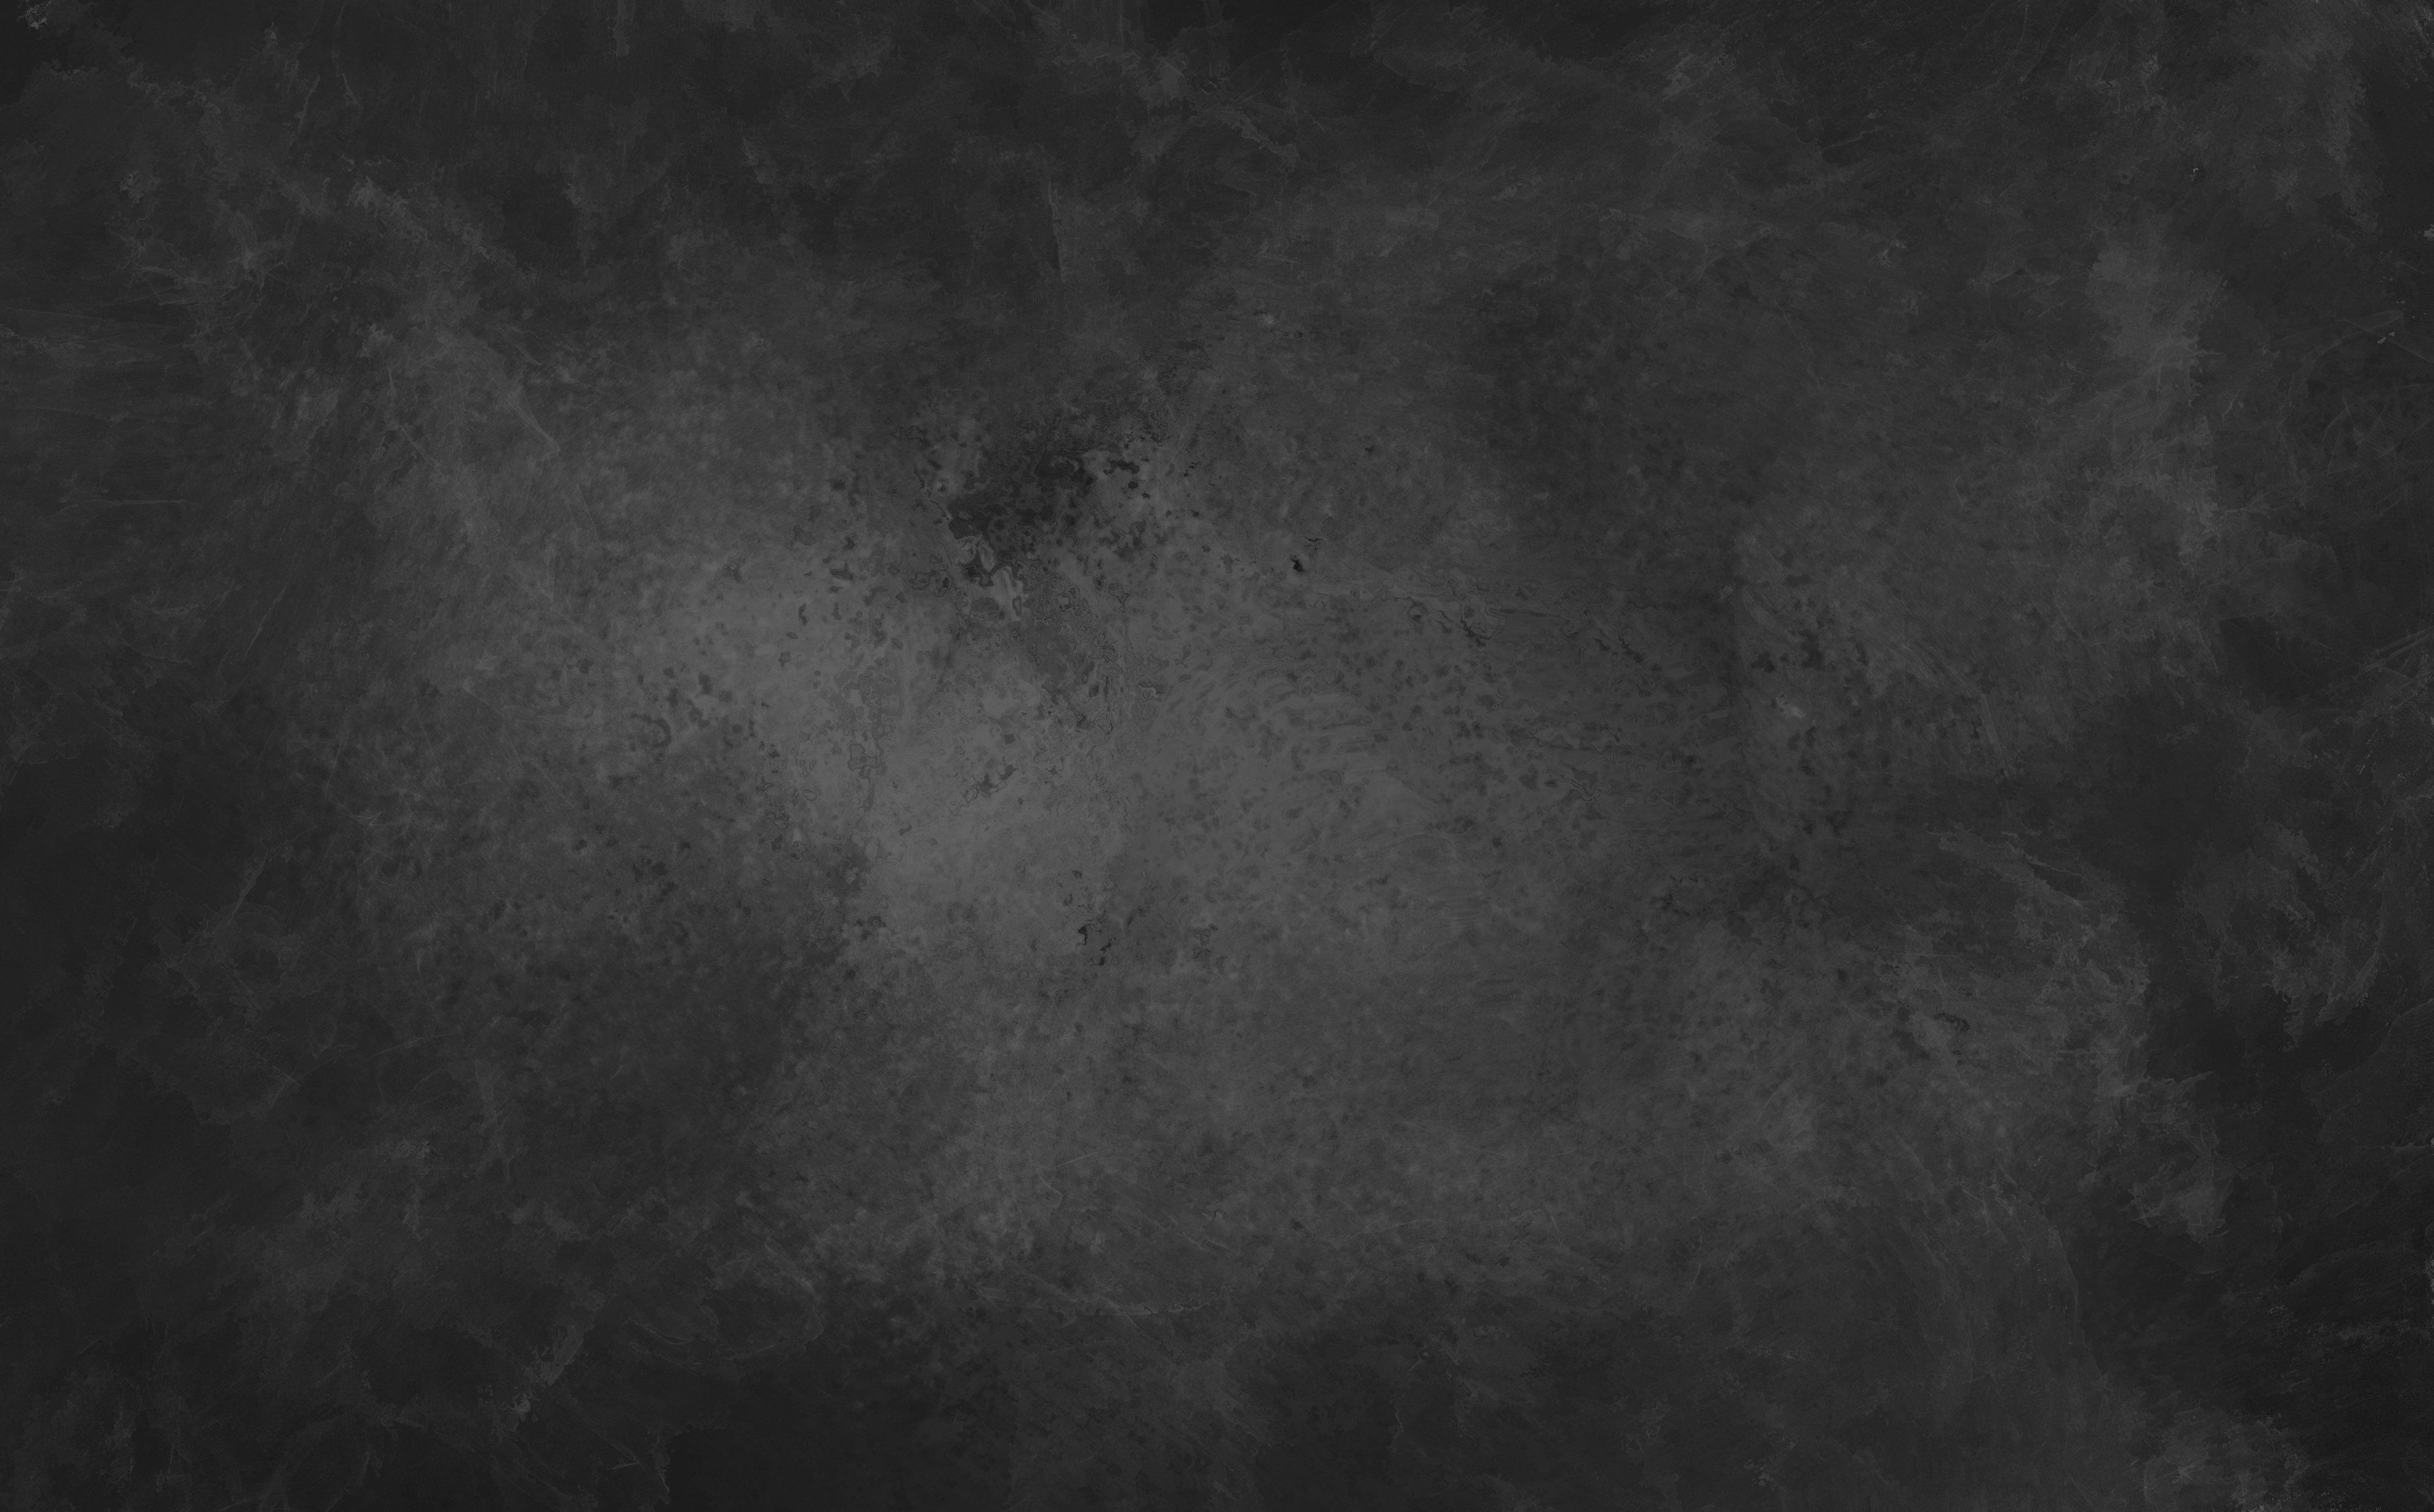 Charcoal Background Black Backgrounds Office Wall Design Concrete Texture